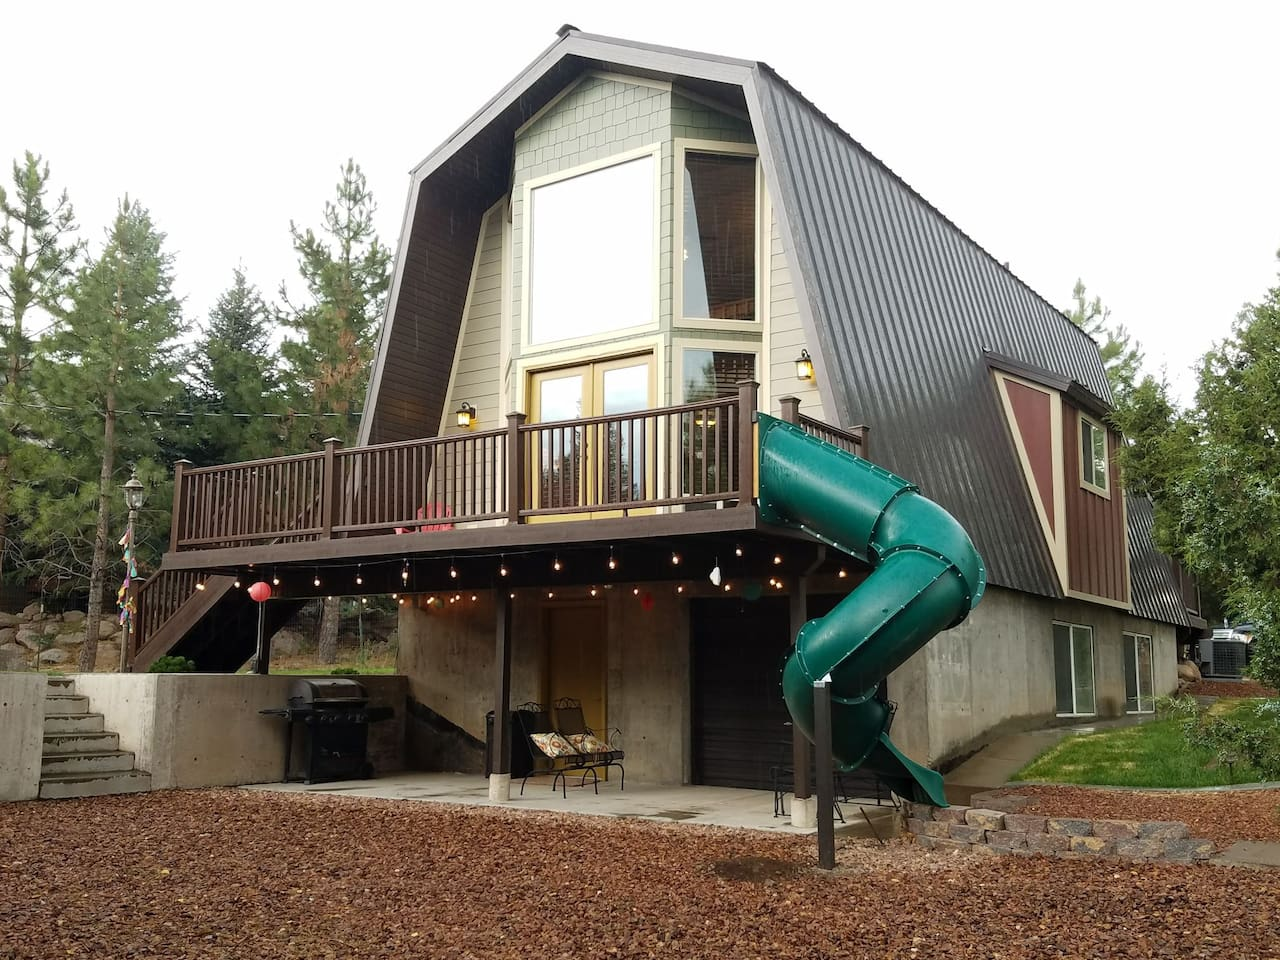 Cozy Pine Valley cabin, back side and deck, with slide for the kids